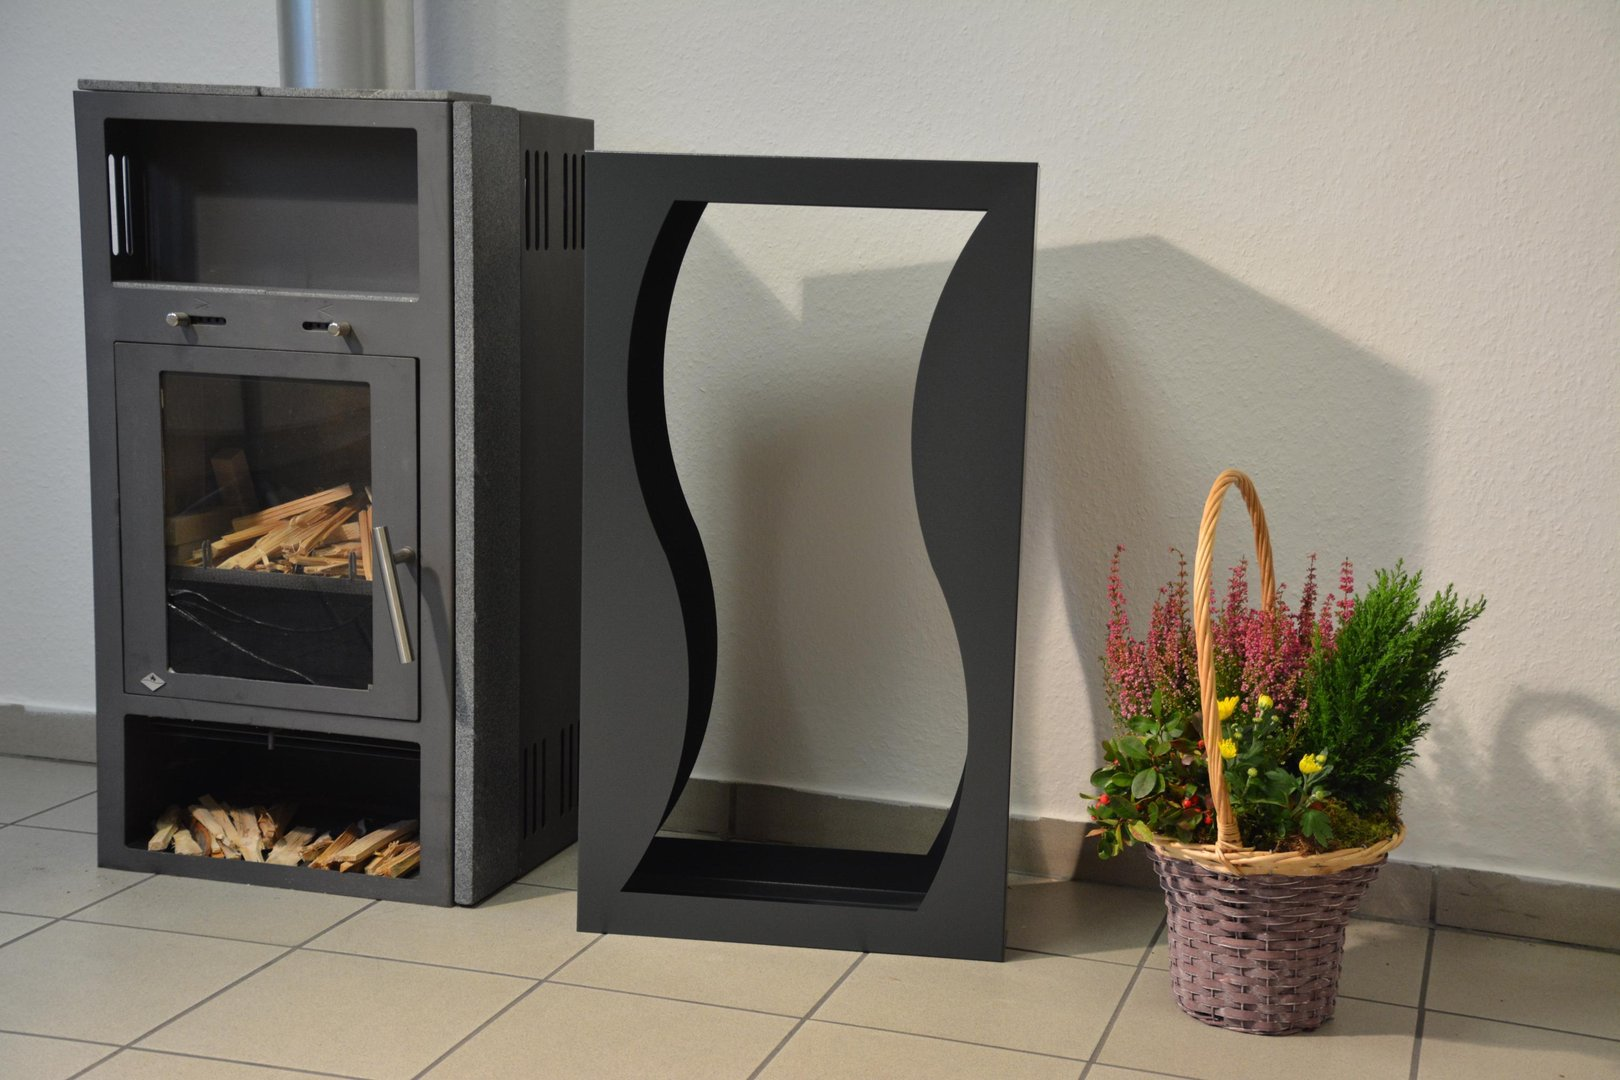 Kamin Regal Metall Kaminholzregal Welle Innenbereich Regal Aus Metall